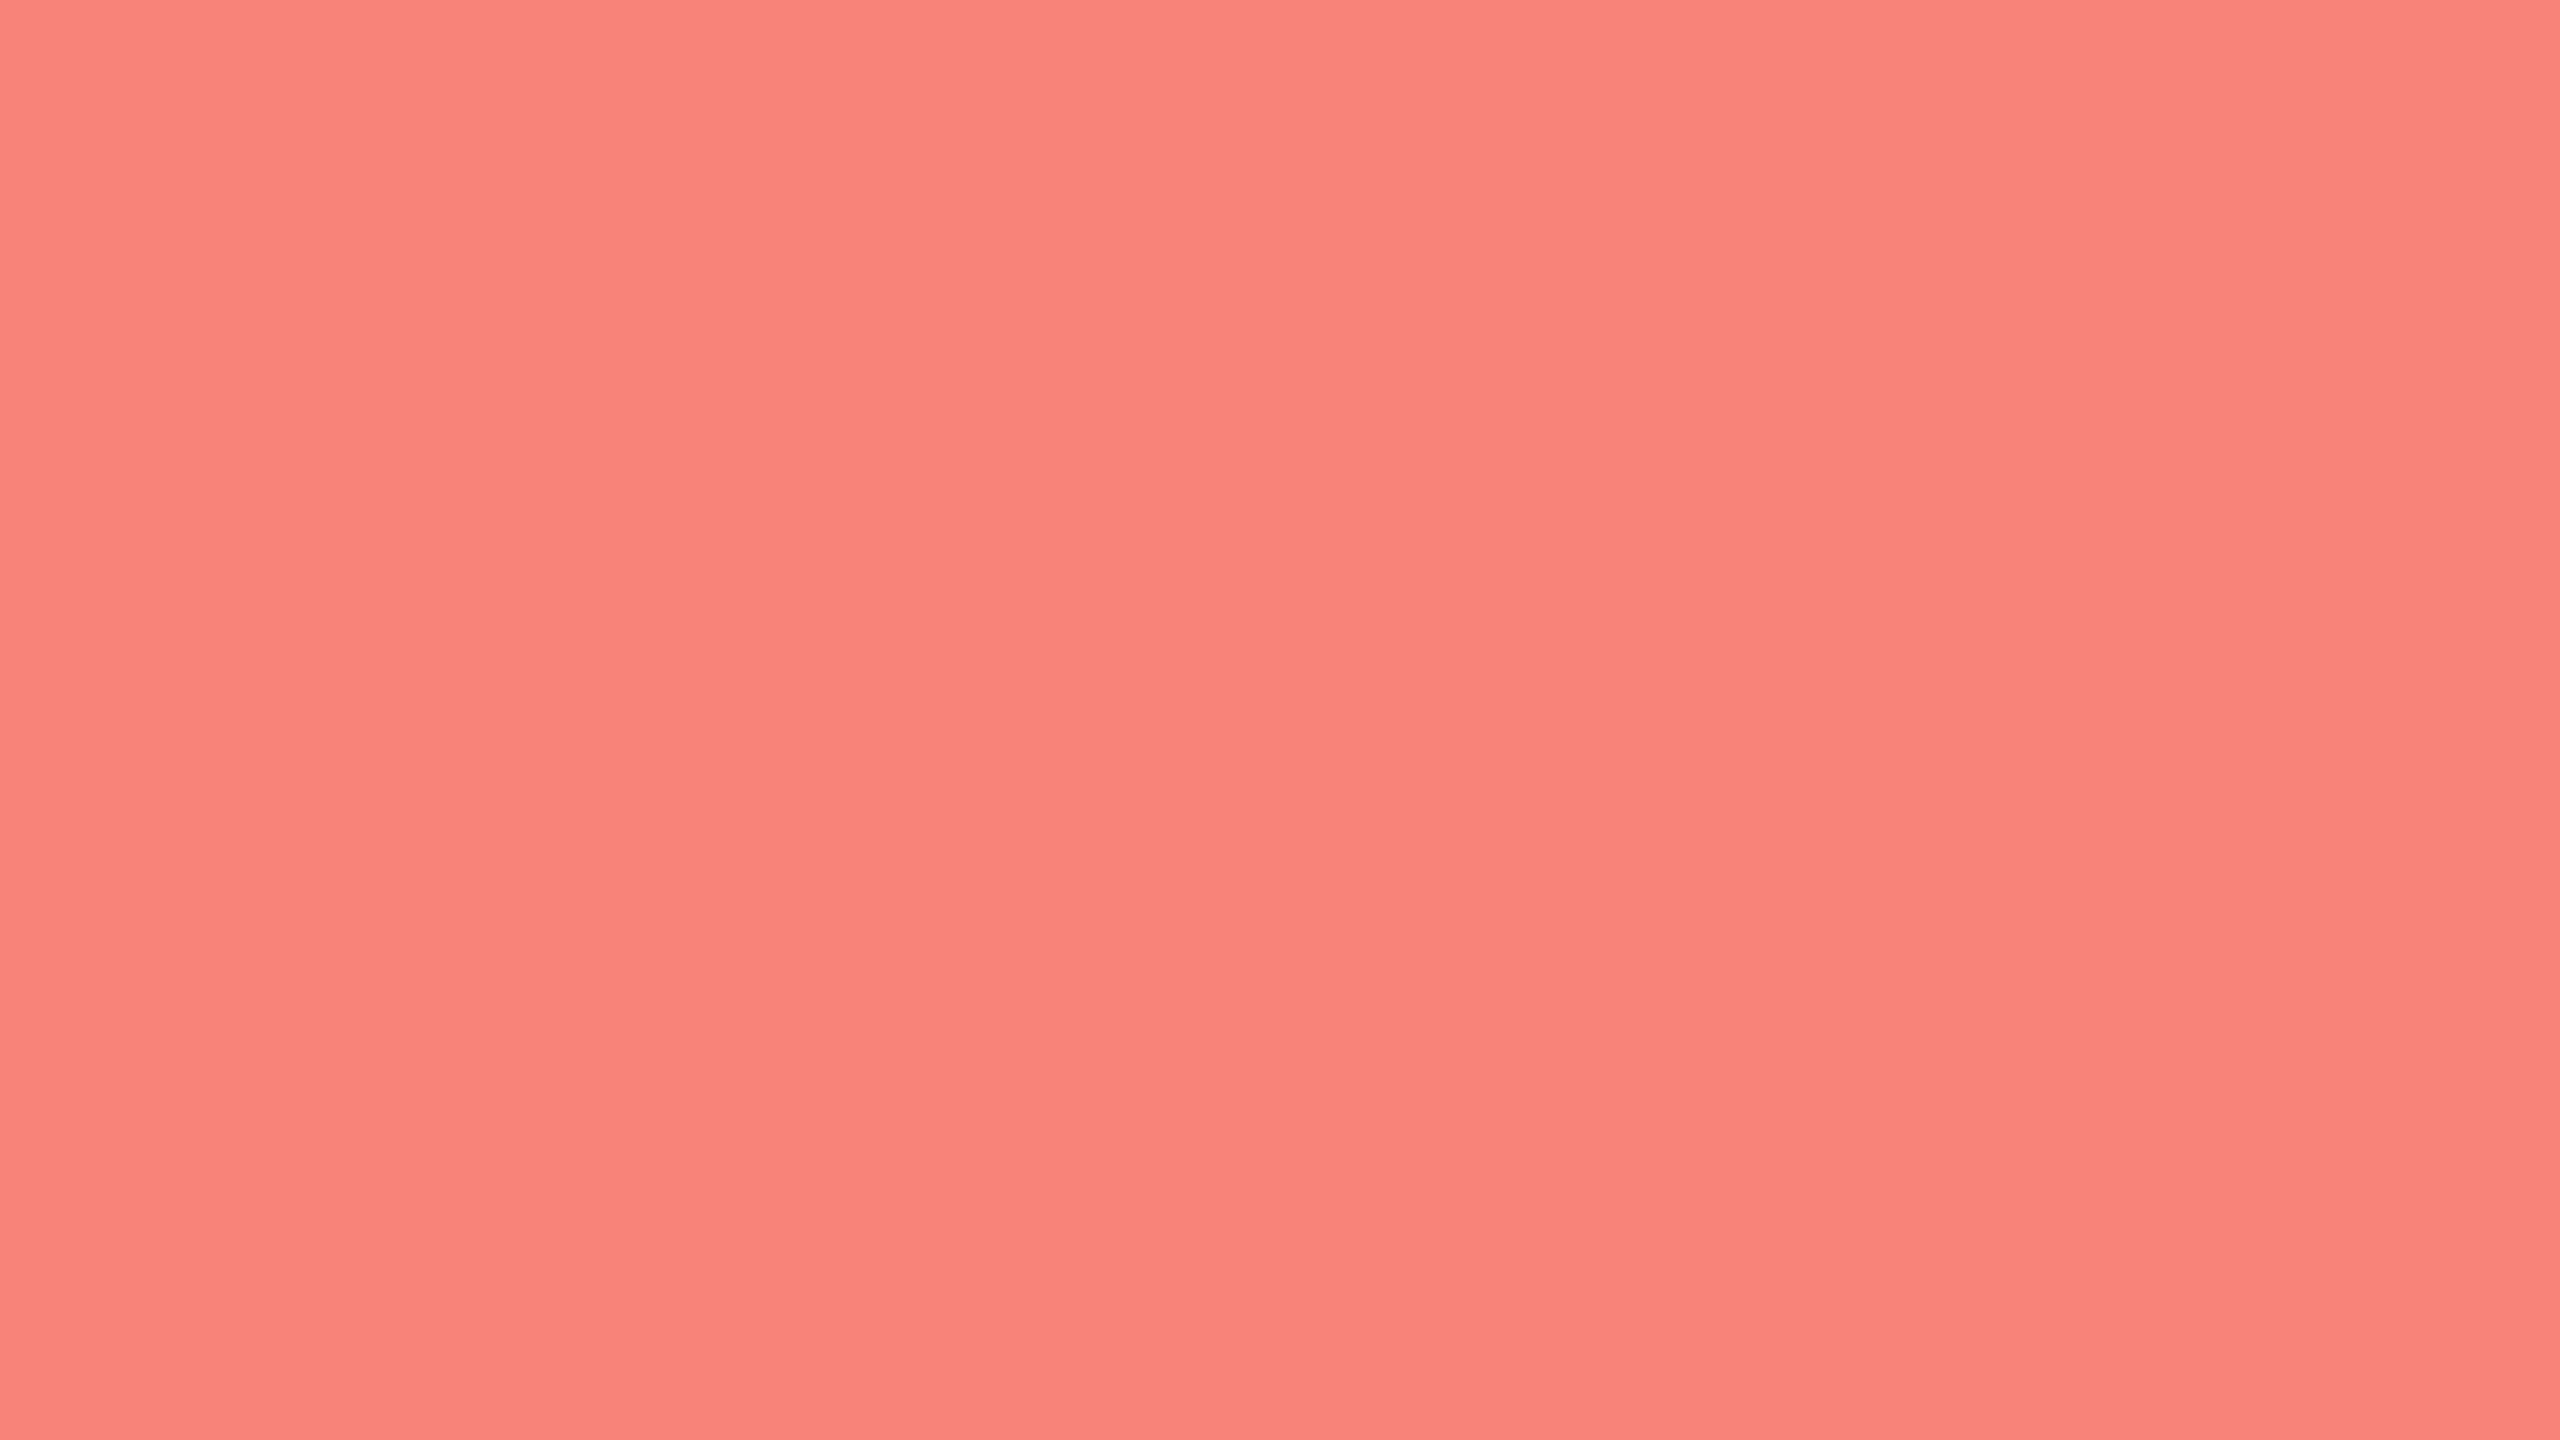 2560x1440 Coral Pink Solid Color Background